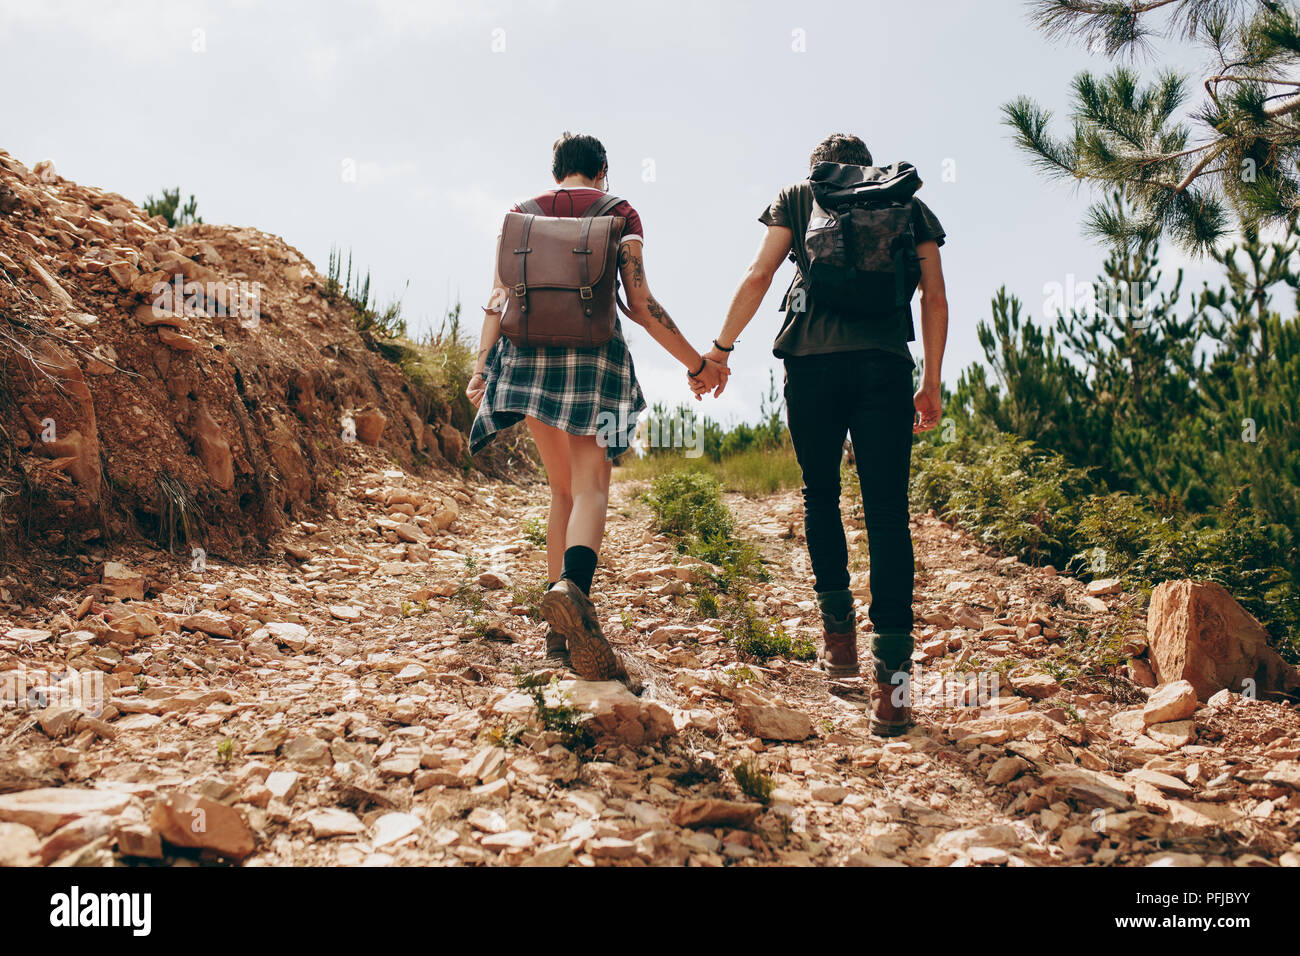 Rear view of a man and woman trekking a rough terrain together holding hands. Couple wearing backpacks on a holiday hiking on a hill. - Stock Image